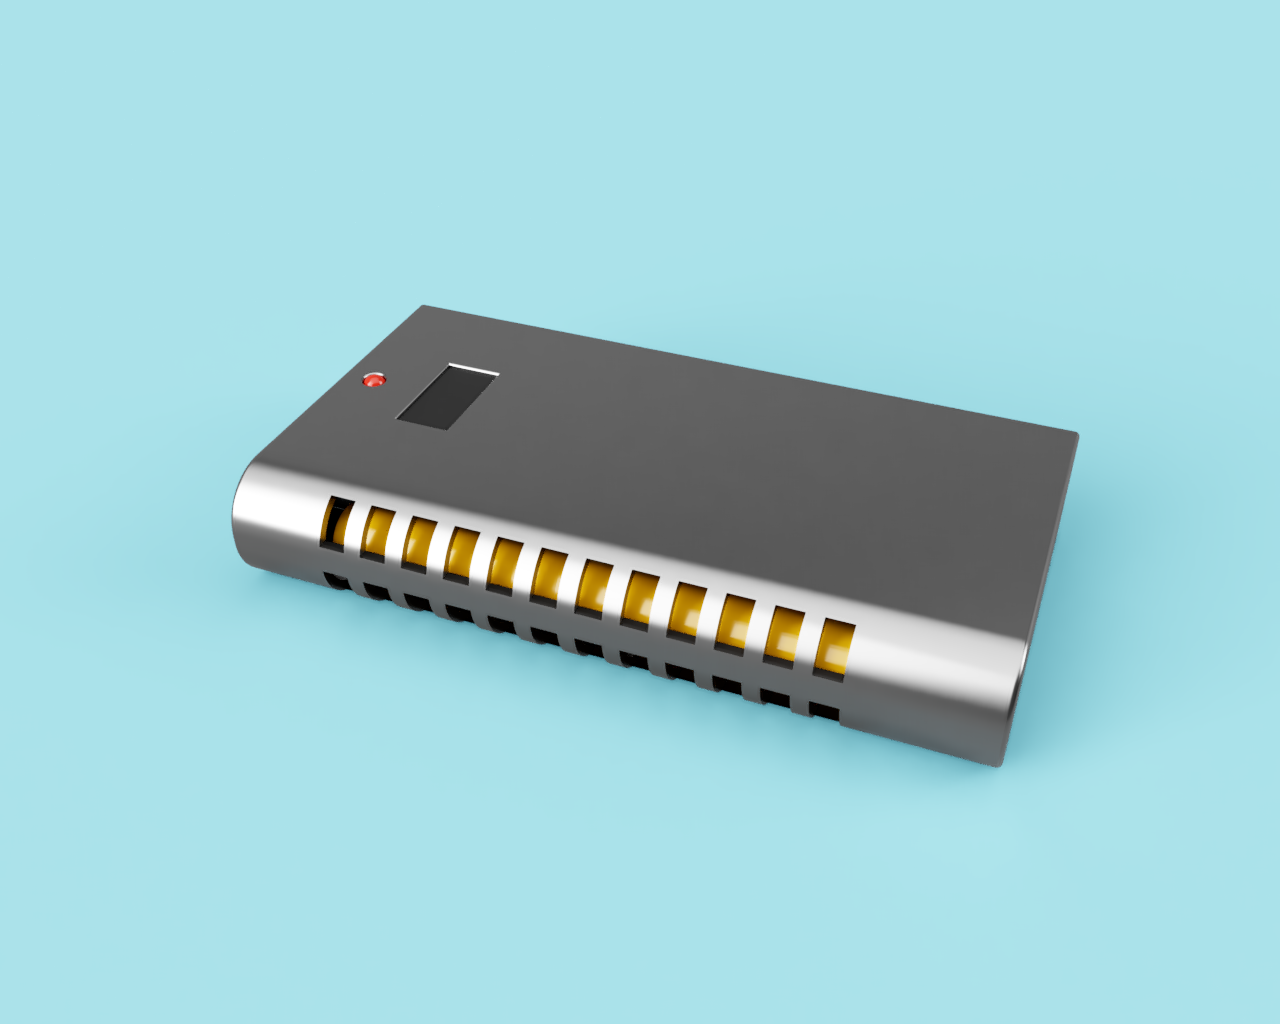 Dosimeter_2019-Apr-24_04-10-12PM-000_CustomizedView882766948.png Download free STL file STS-5 Dosimeter (Geiger Counter) • 3D printer object, SeanTheITGuy